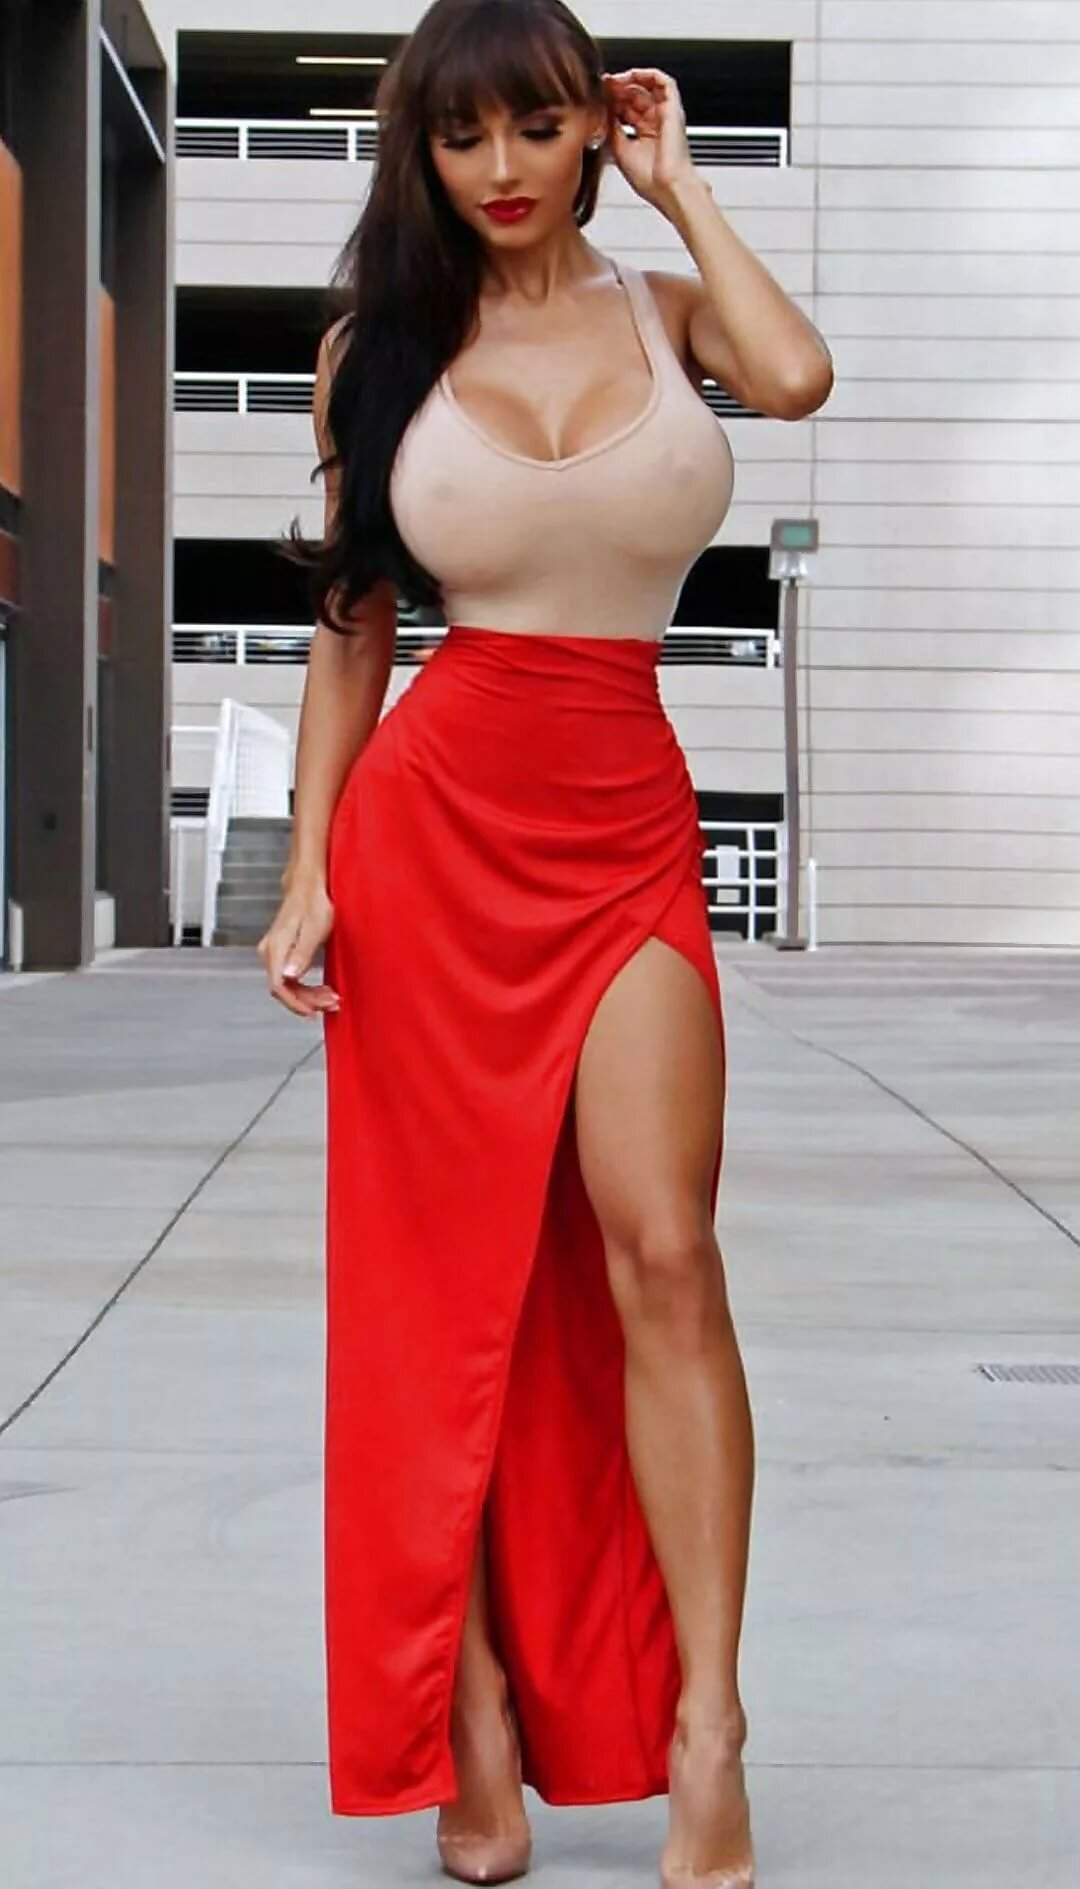 Dress-up girls with boobs